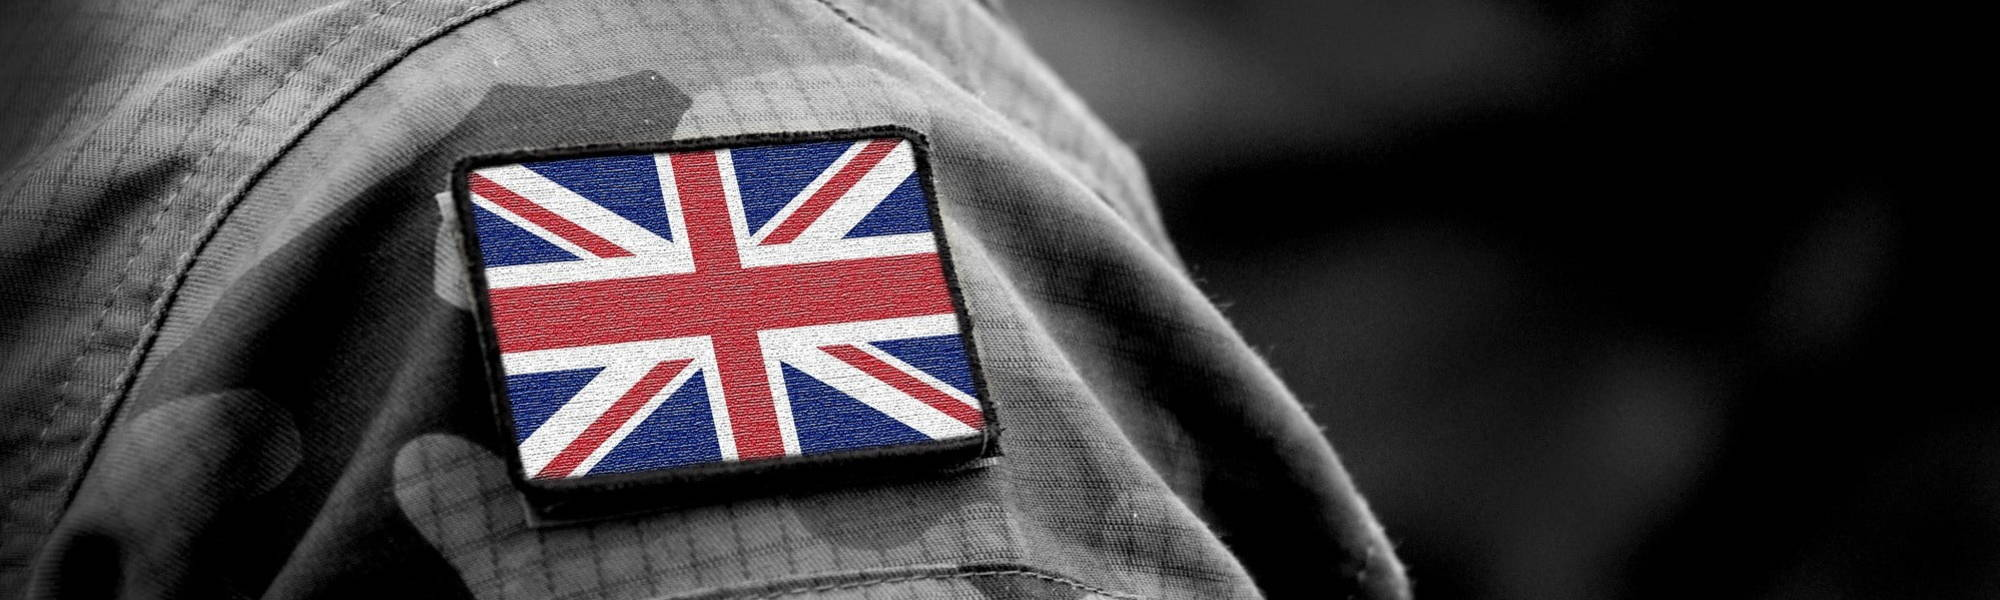 Union Jack on Armed Forces Uniform